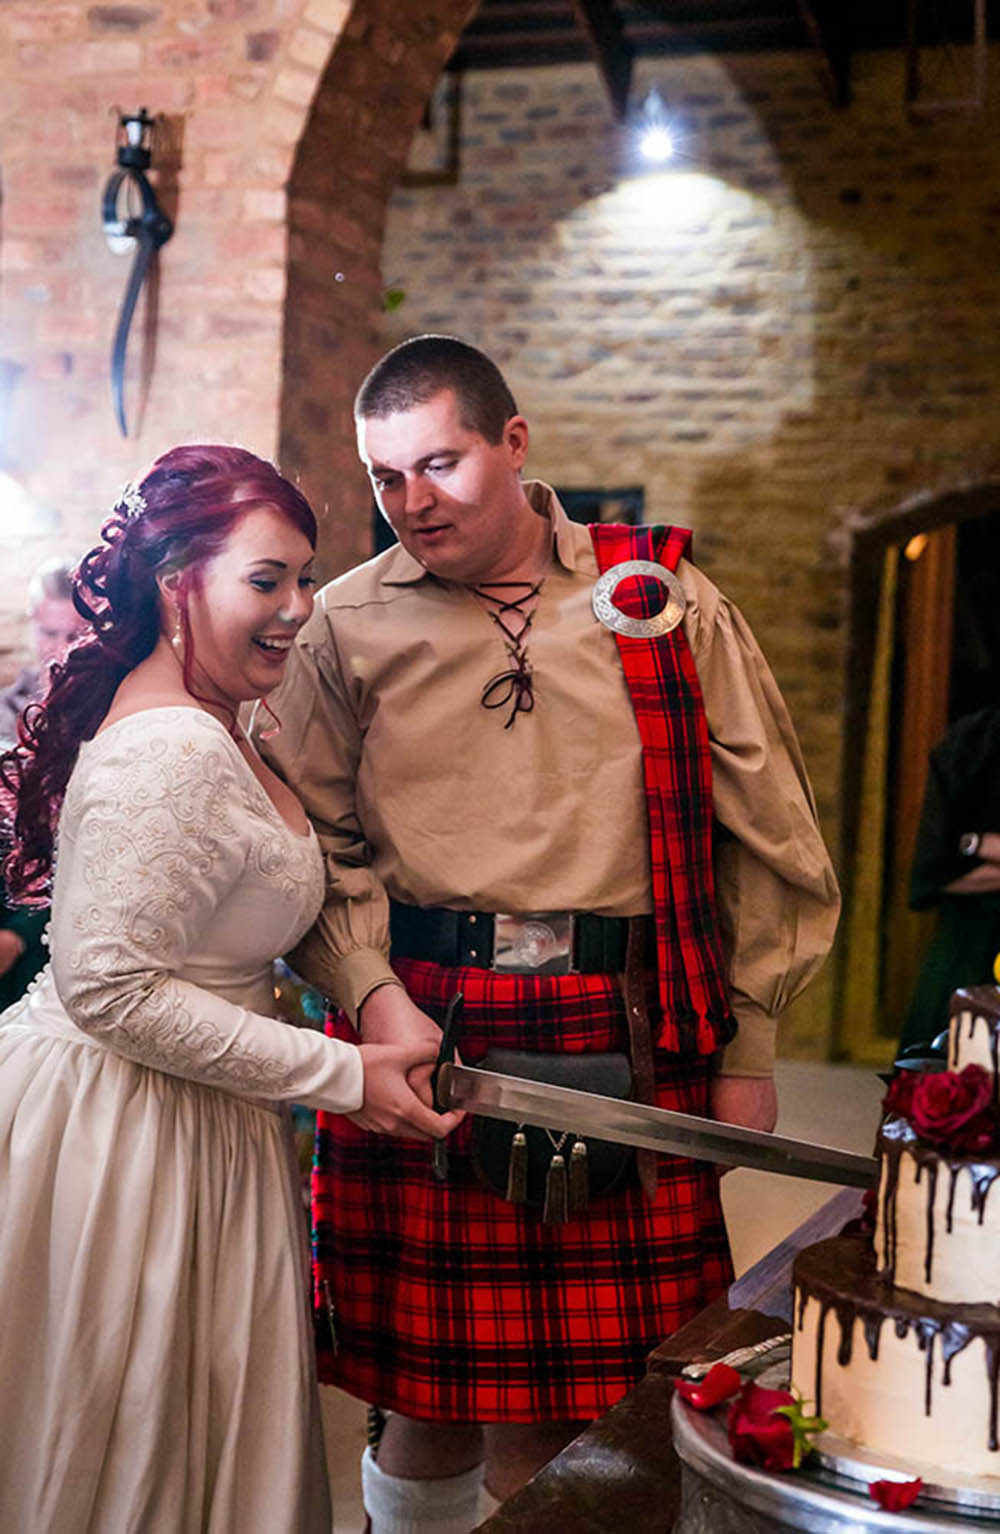 medieval-themed-wedding-medieval-wedding-dgr-photography-castle-wedding-128